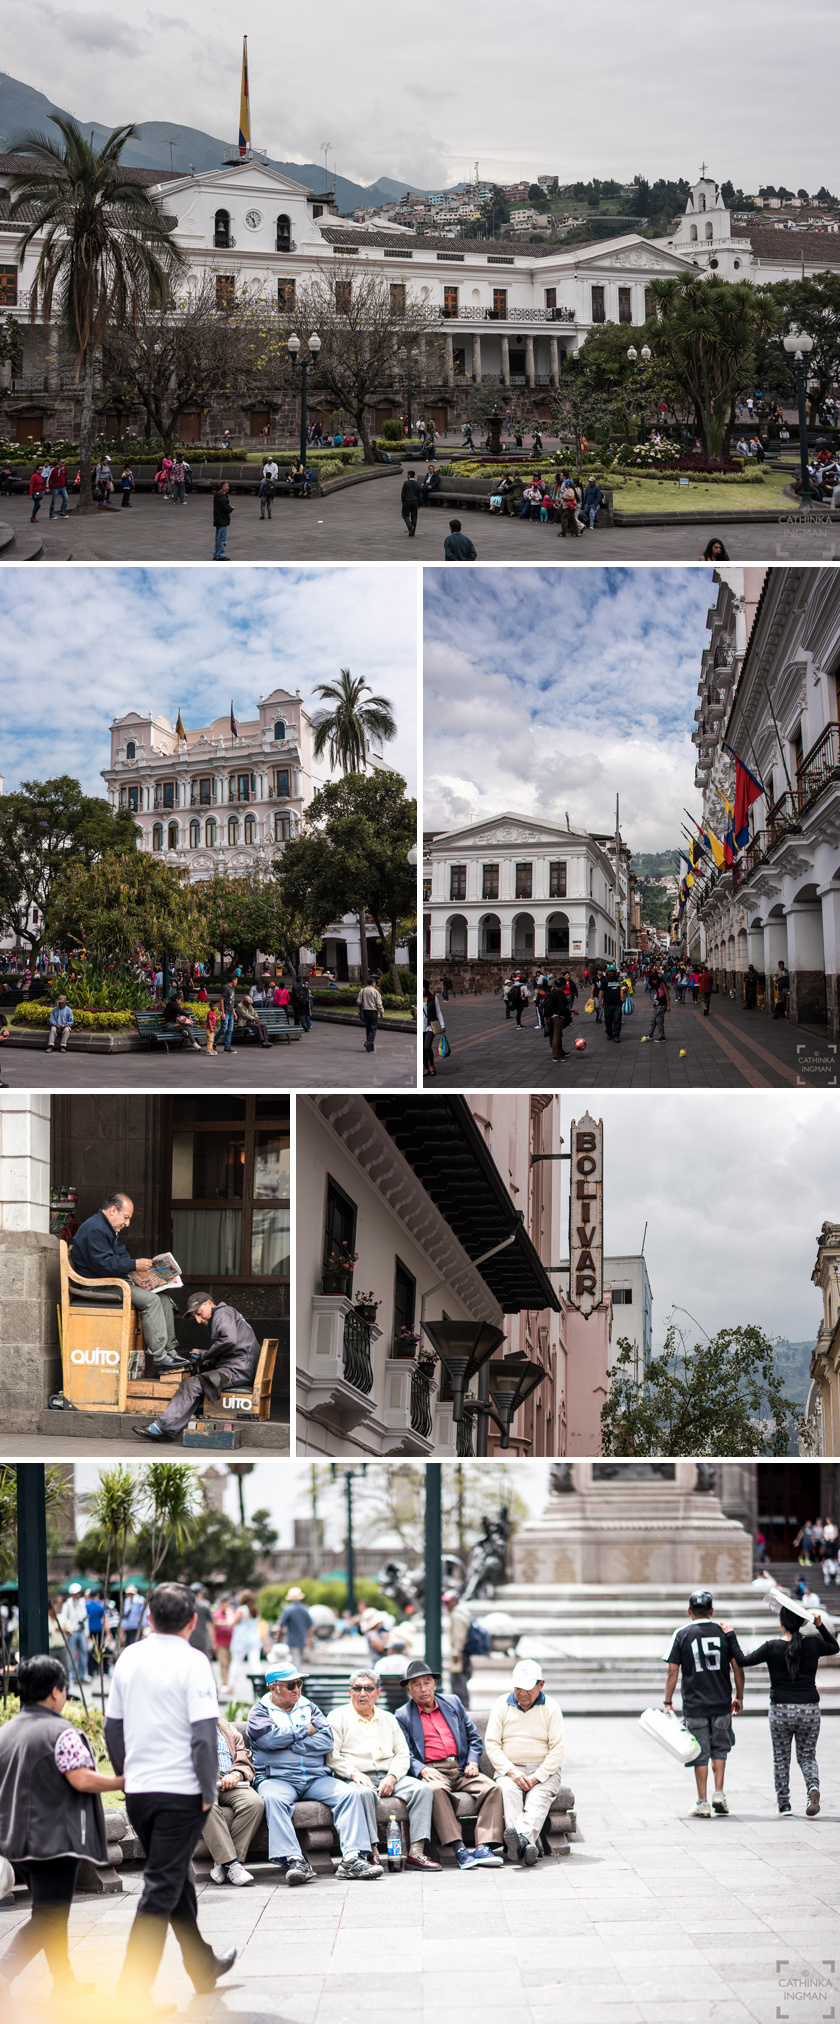 Sightseeing i Quito, Plaza del la Independencia